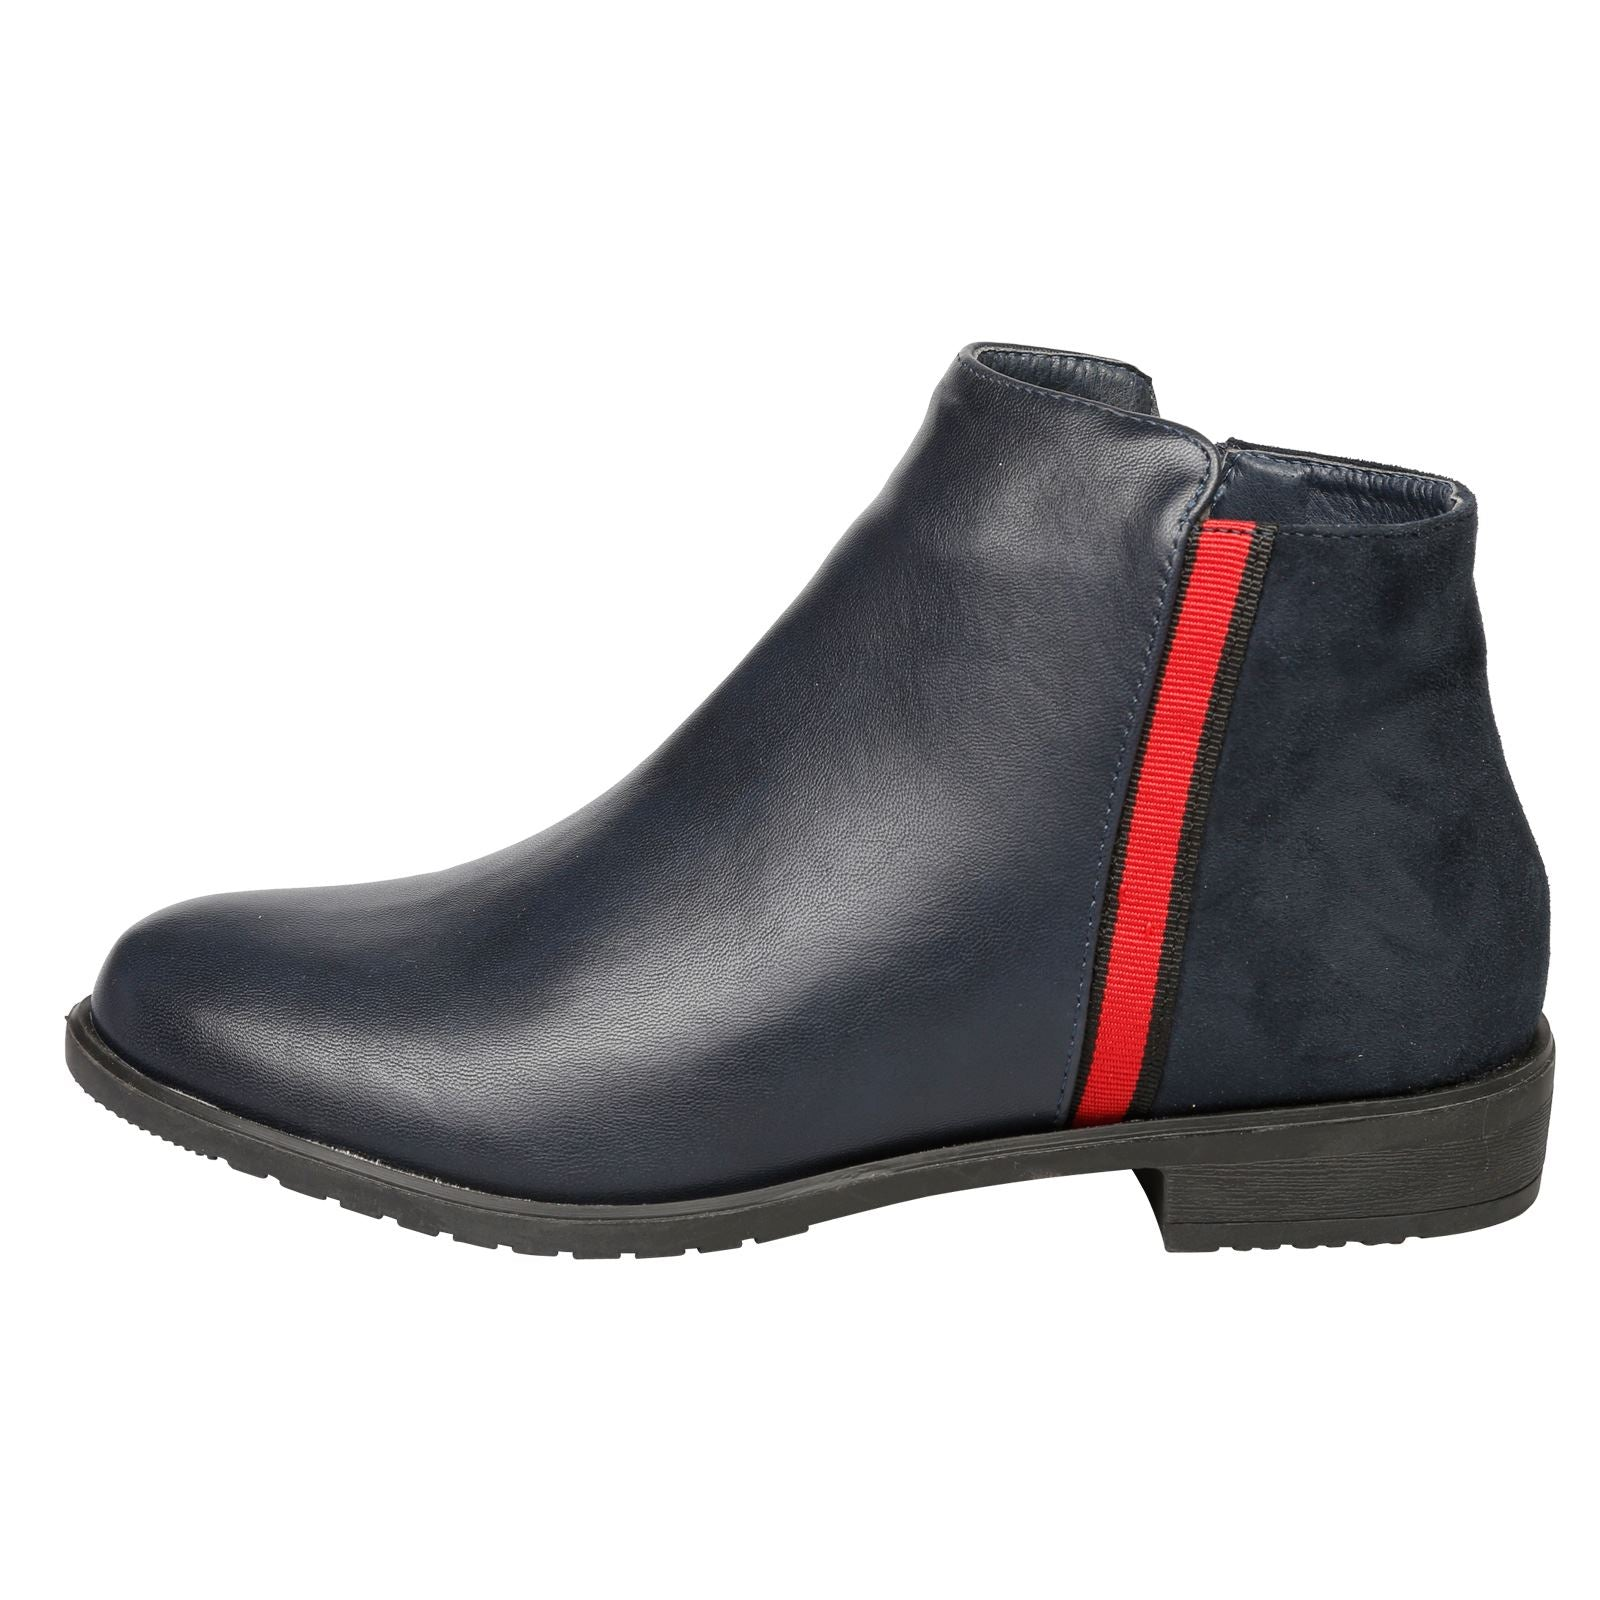 Harleigh Two Tone Ankle Boots in Navy Blue - Feet First Fashion